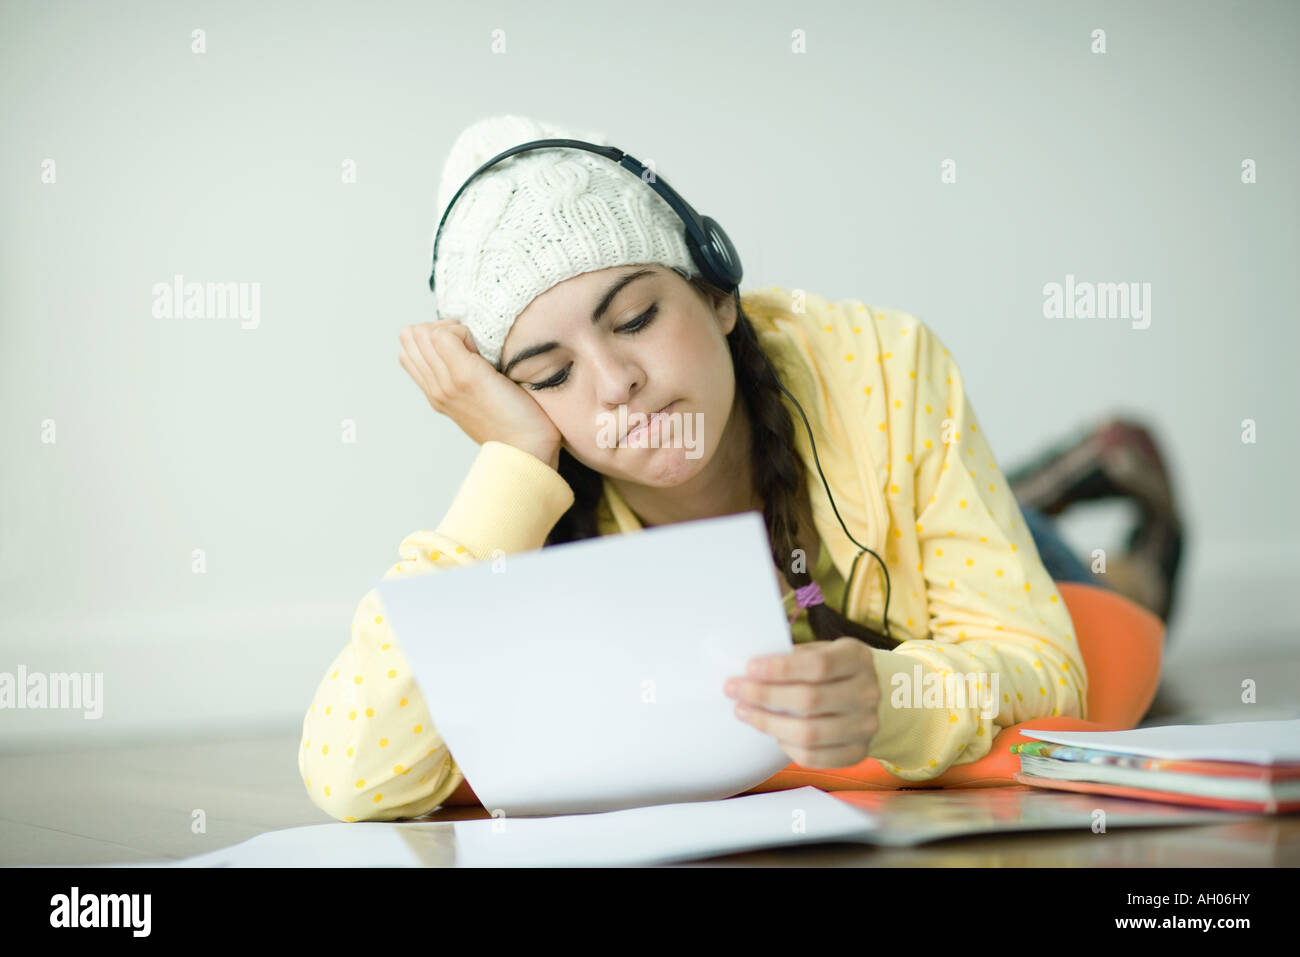 Young woman lying on floor listening to headphones and doing homework - Stock Image